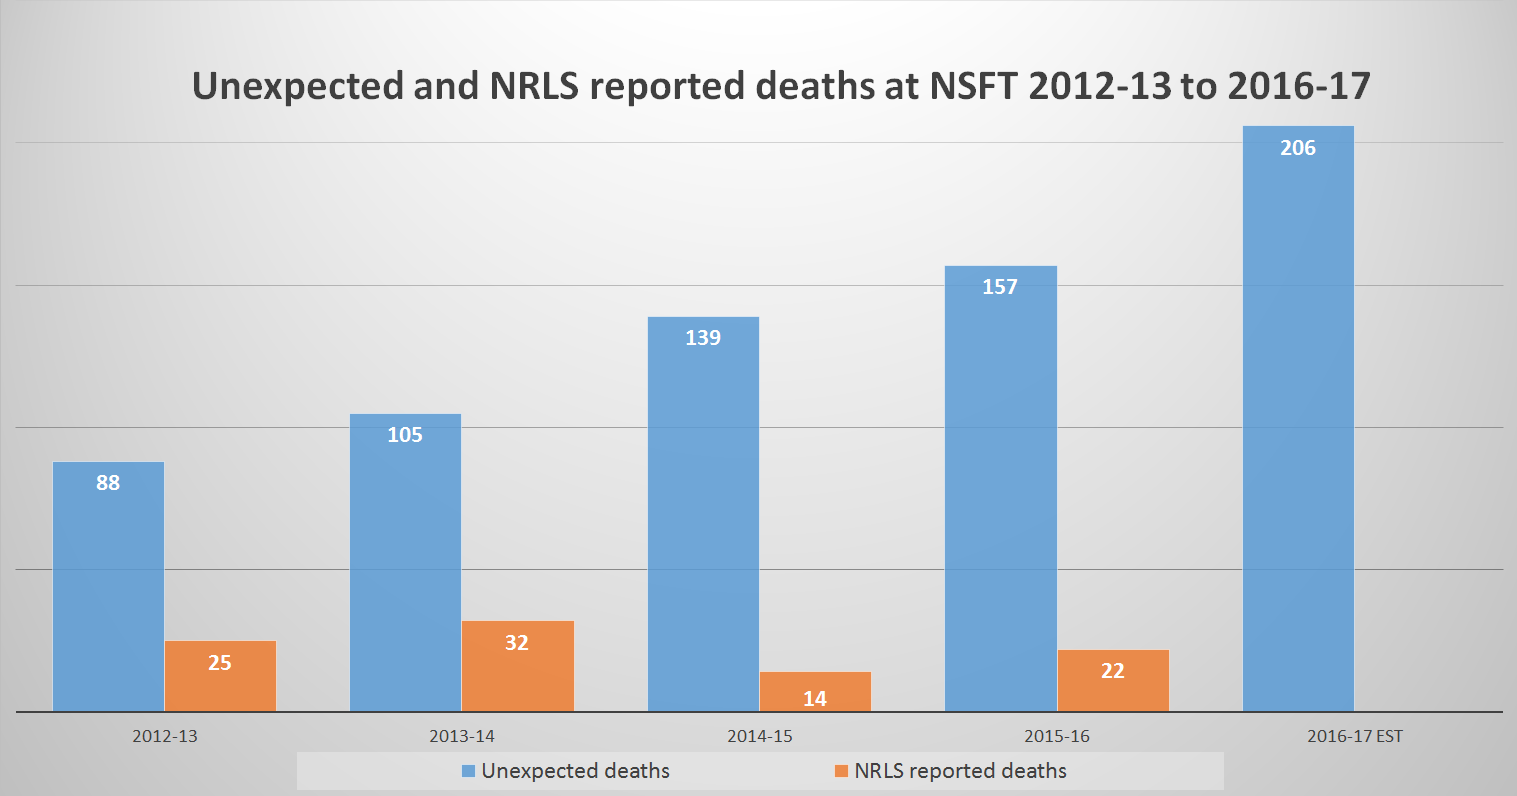 unexpected-and-nrls-reported-deaths-at-nsft-2012-13-to-2016-17-estimated